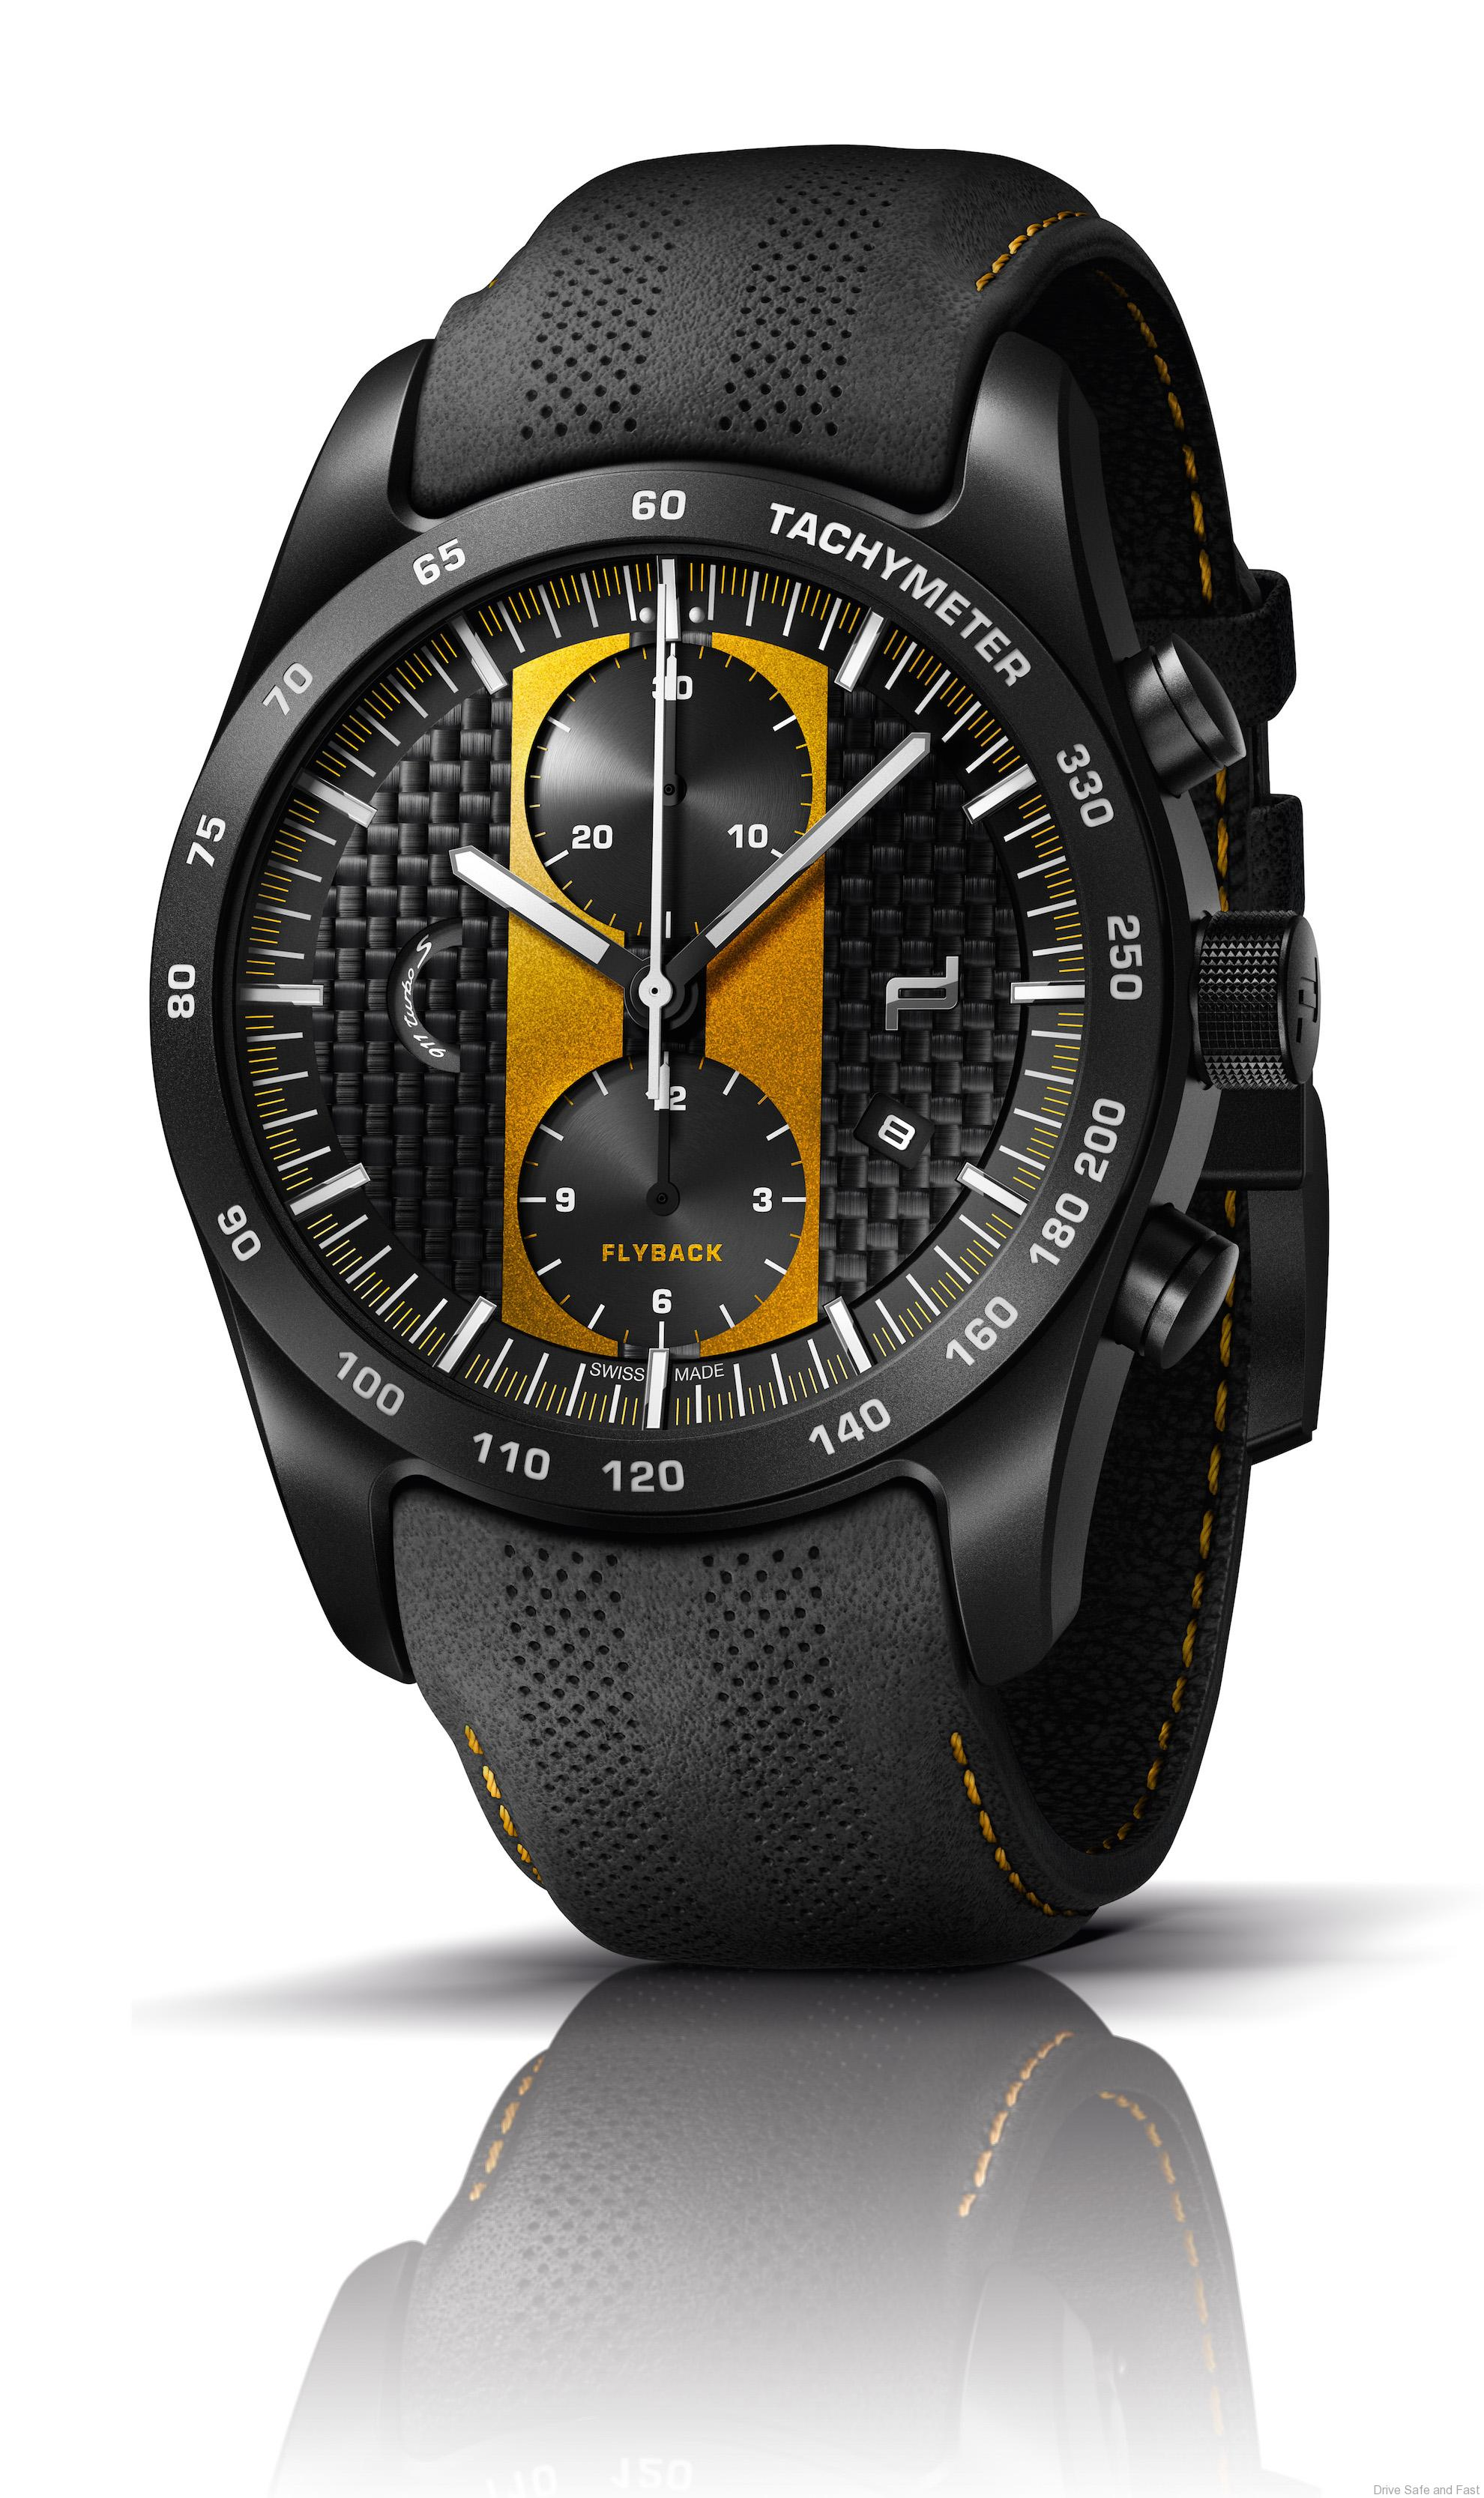 8612cd1ec01 For this new Porsche Design Chronograph 911 Turbo S Exclusive Series